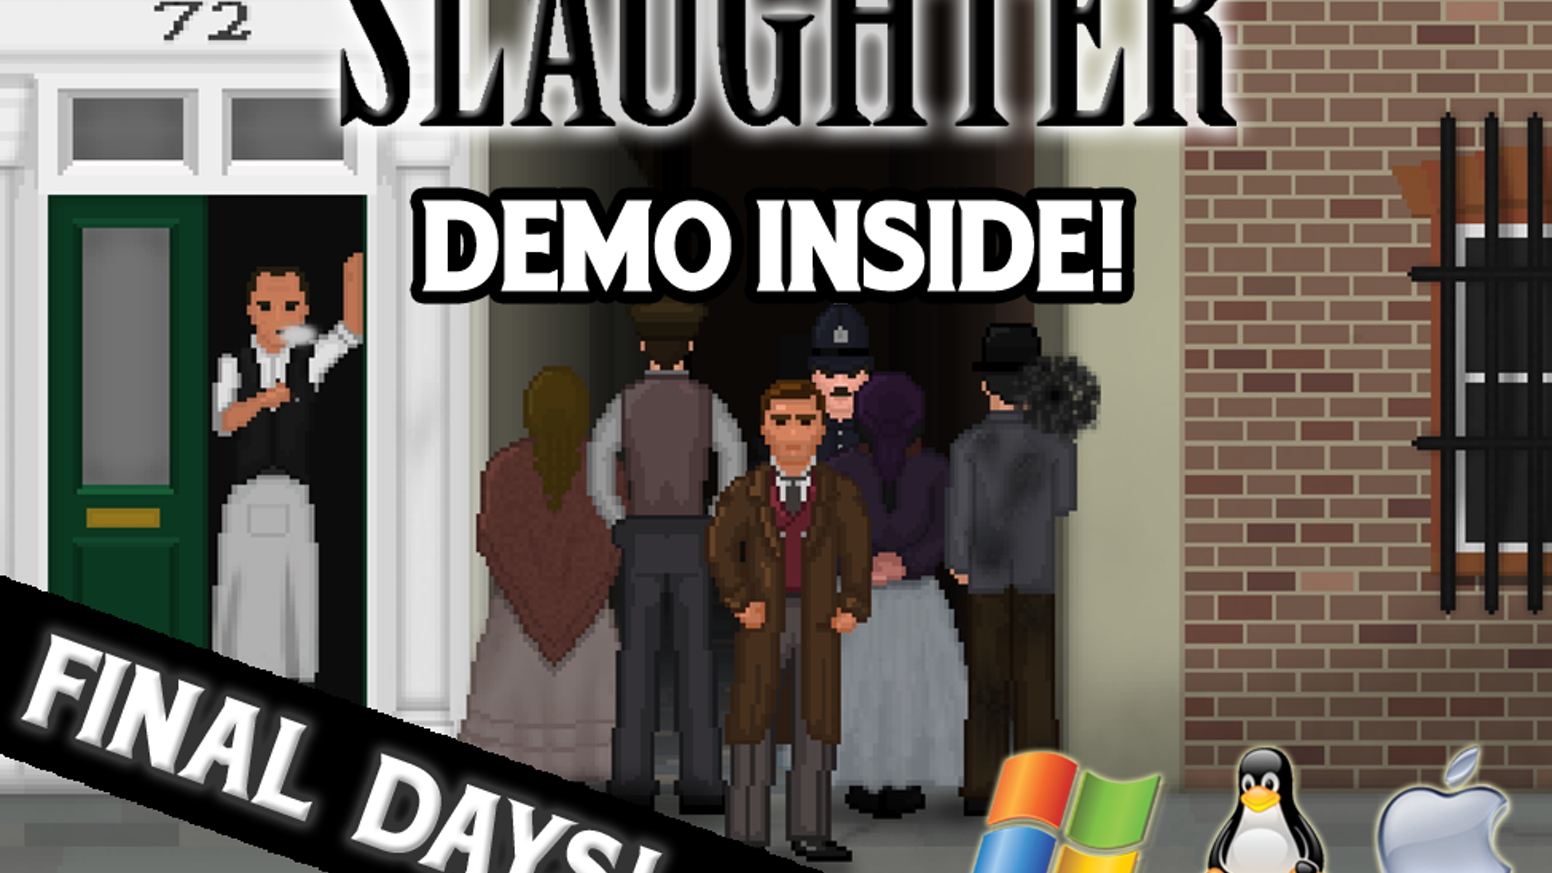 The Slaughter is a noir style point-and-click adventure game set in Victorian London in the shadow of a string of serial killings.